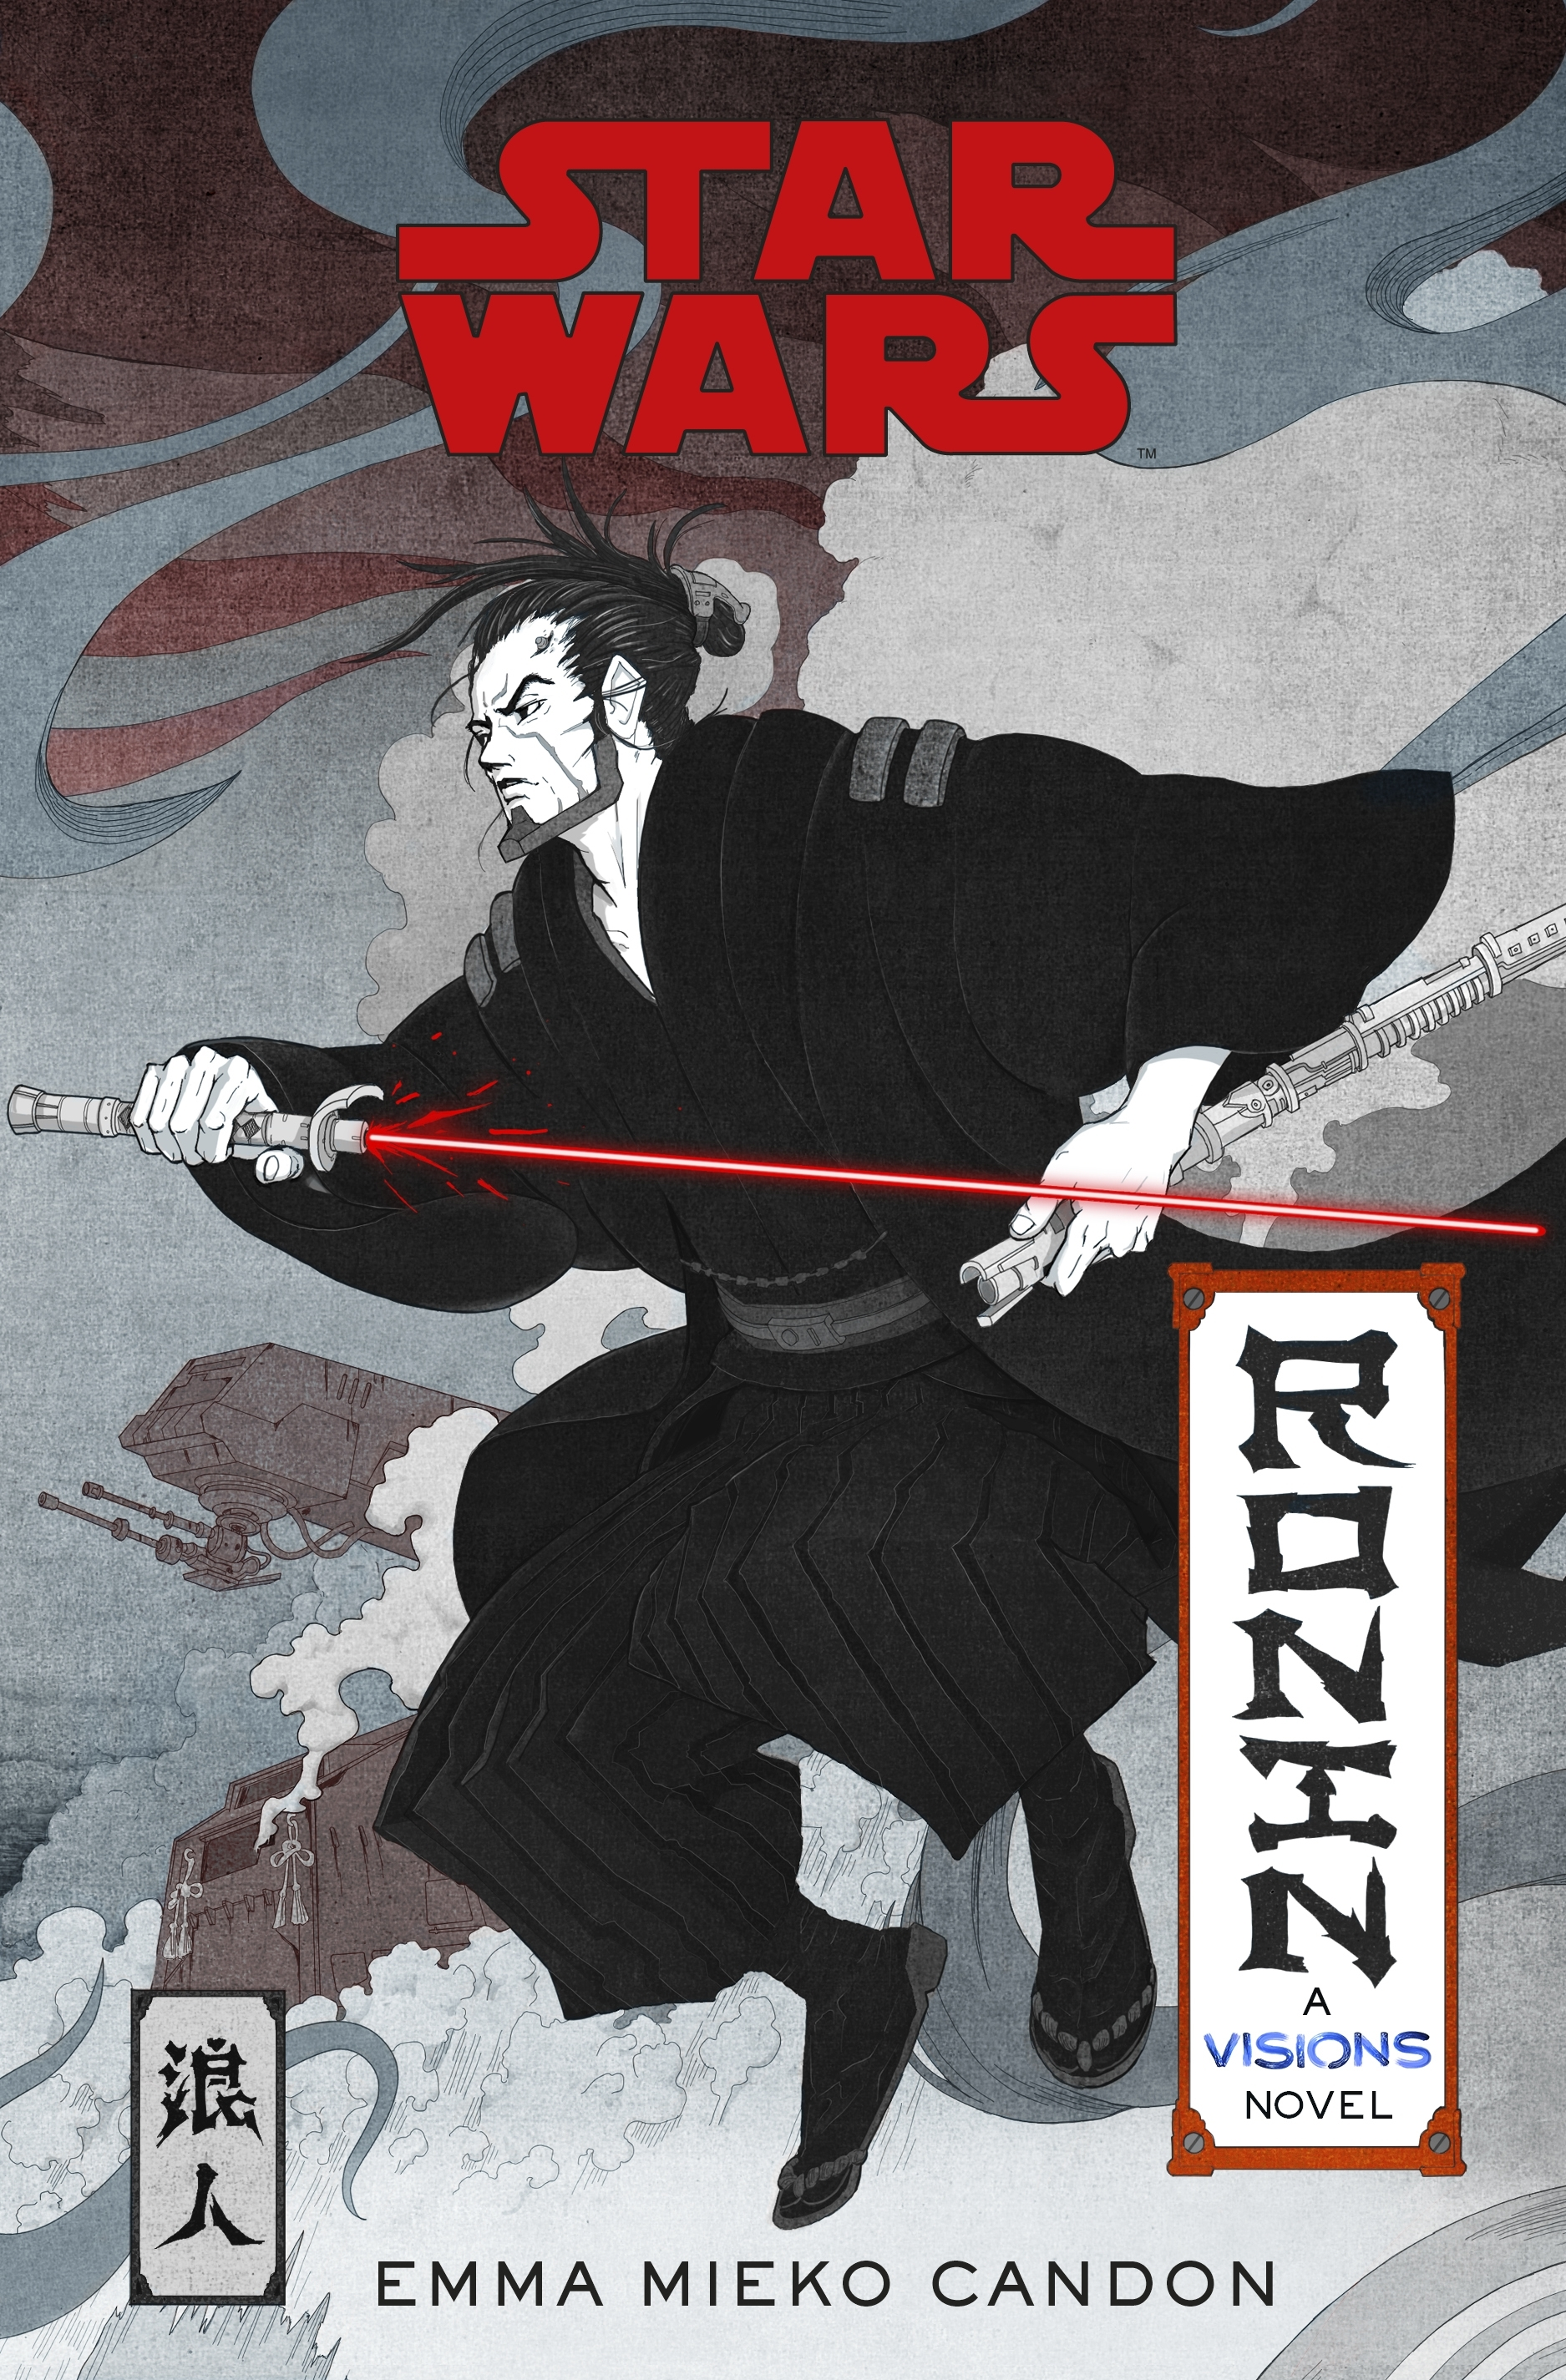 Star Wars Visions - Ronin Cover